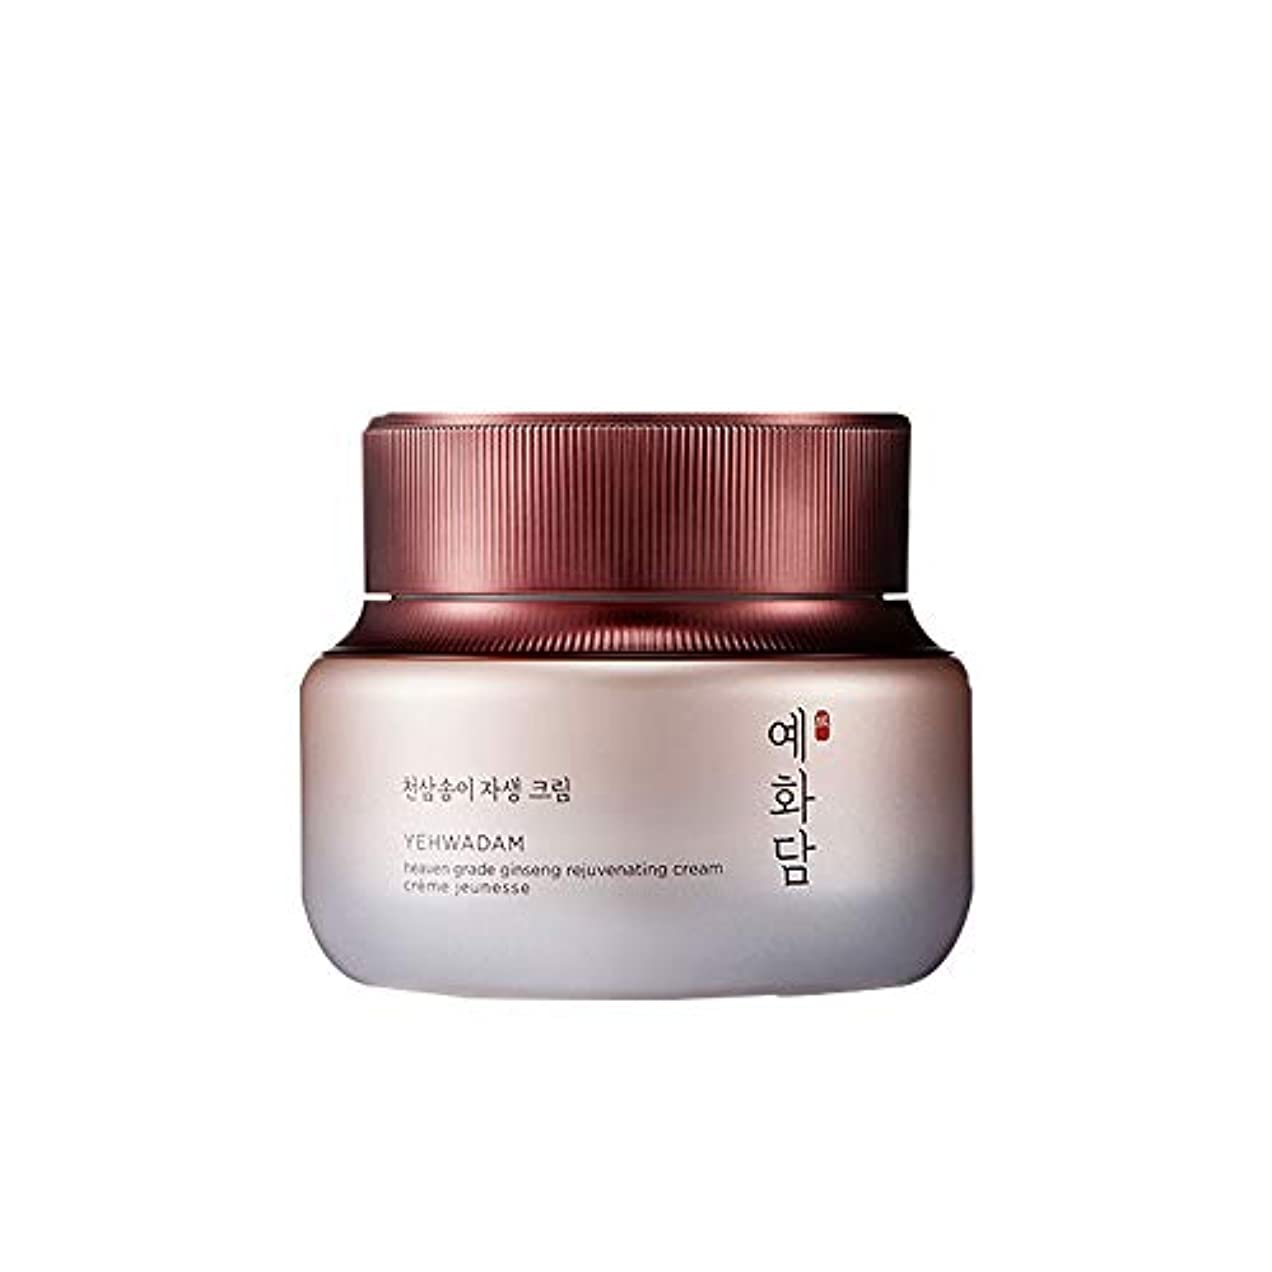 リスキーな南死の顎[ザフェイスショップ]The Faceshop YEHWADAM天参松栮自生クリーム 50ml The Faceshop YEHWADAM Heaven Grade Ginseng Regenerating Cream...